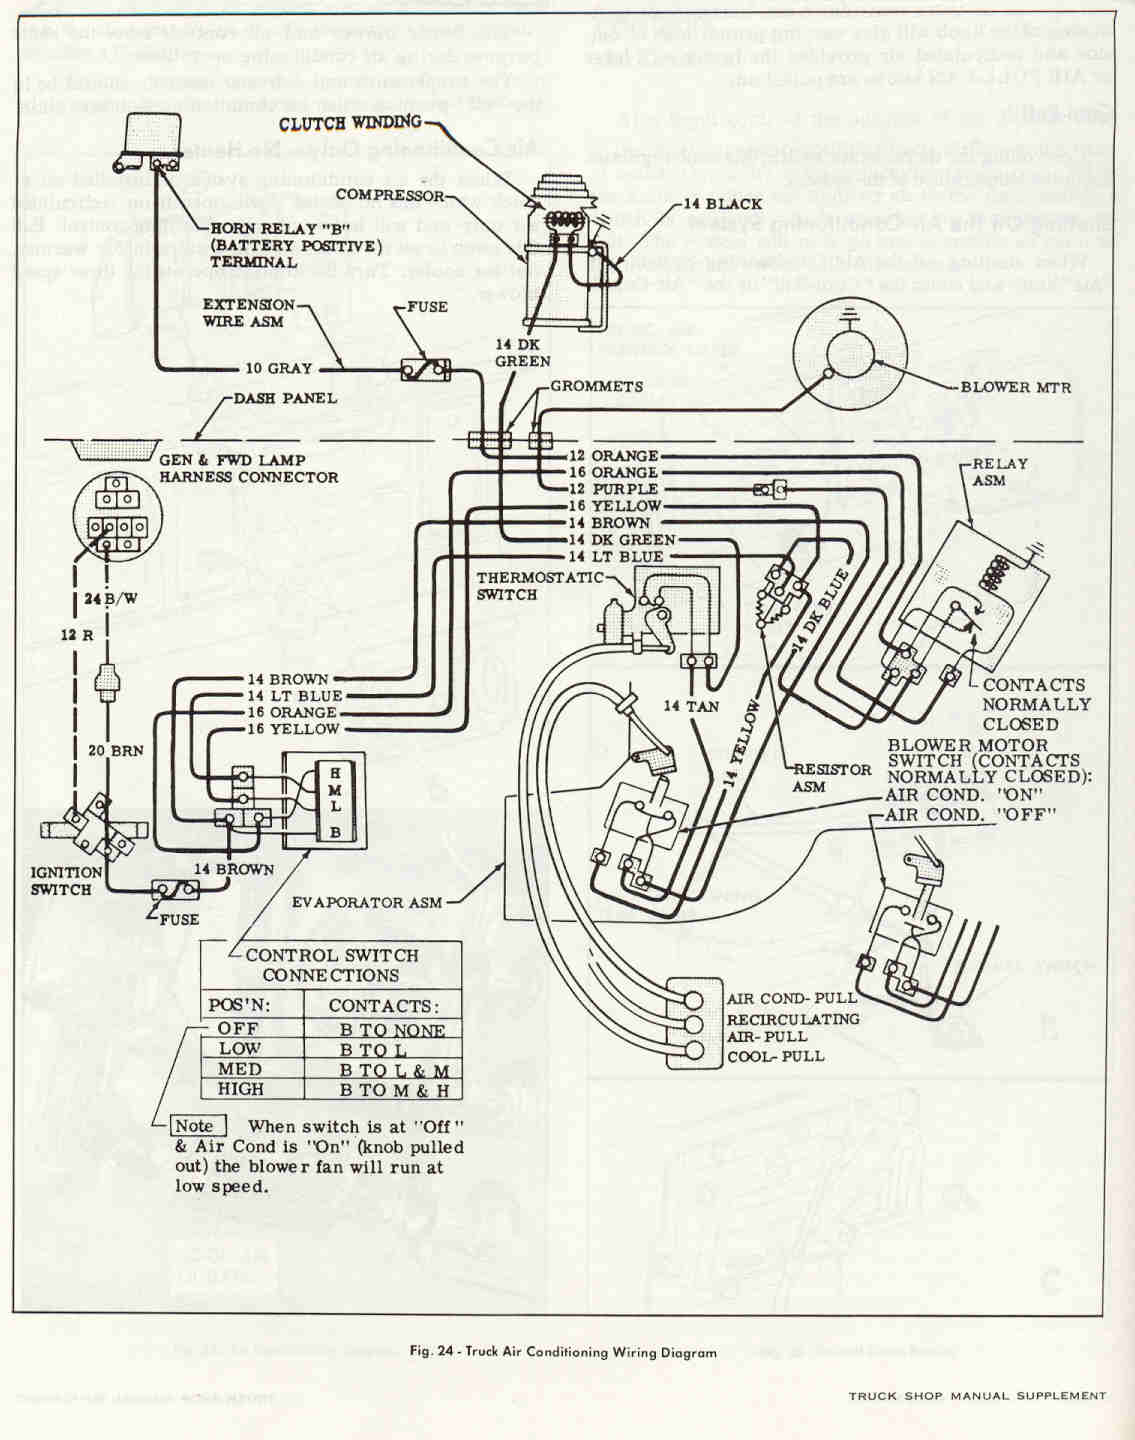 1978 Chevy Pickup Wiring Diagram Simple Guide About 1967 Chevelle Starter 65 C10 Wire Another Blog U2022 Rh Ok2 Infoservice Ru